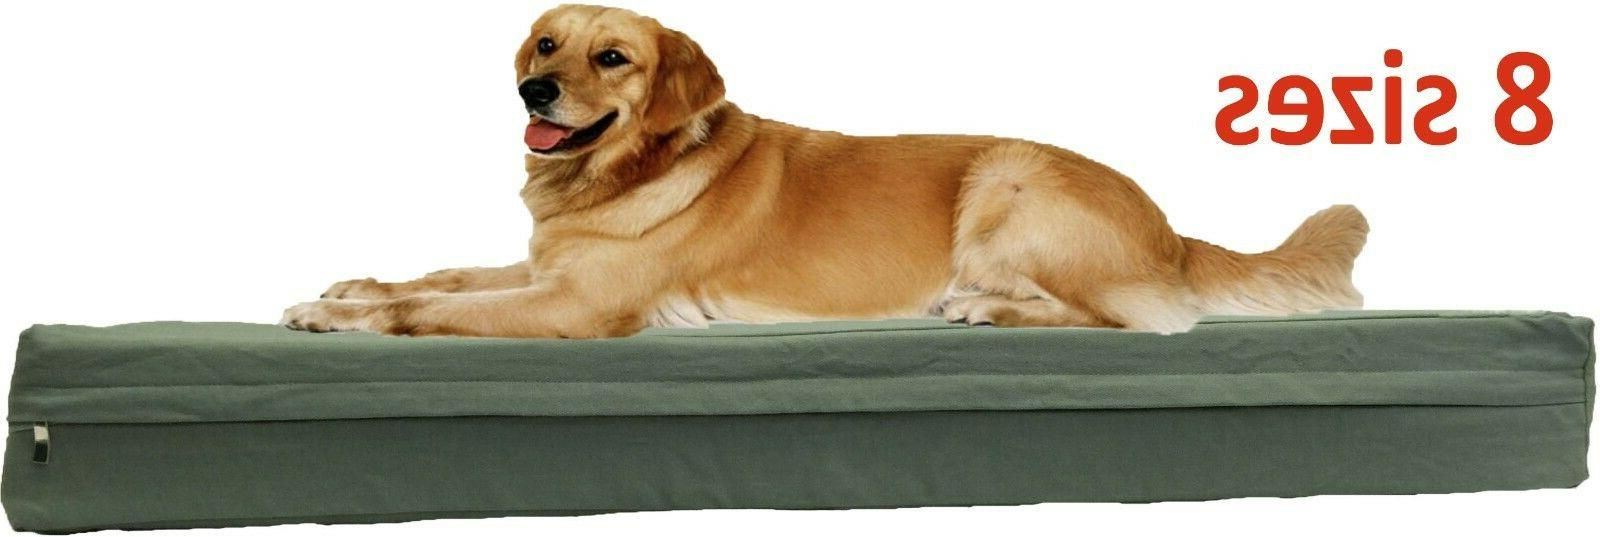 Durable Canvas zipper cover + waterproof liner for dog bed p